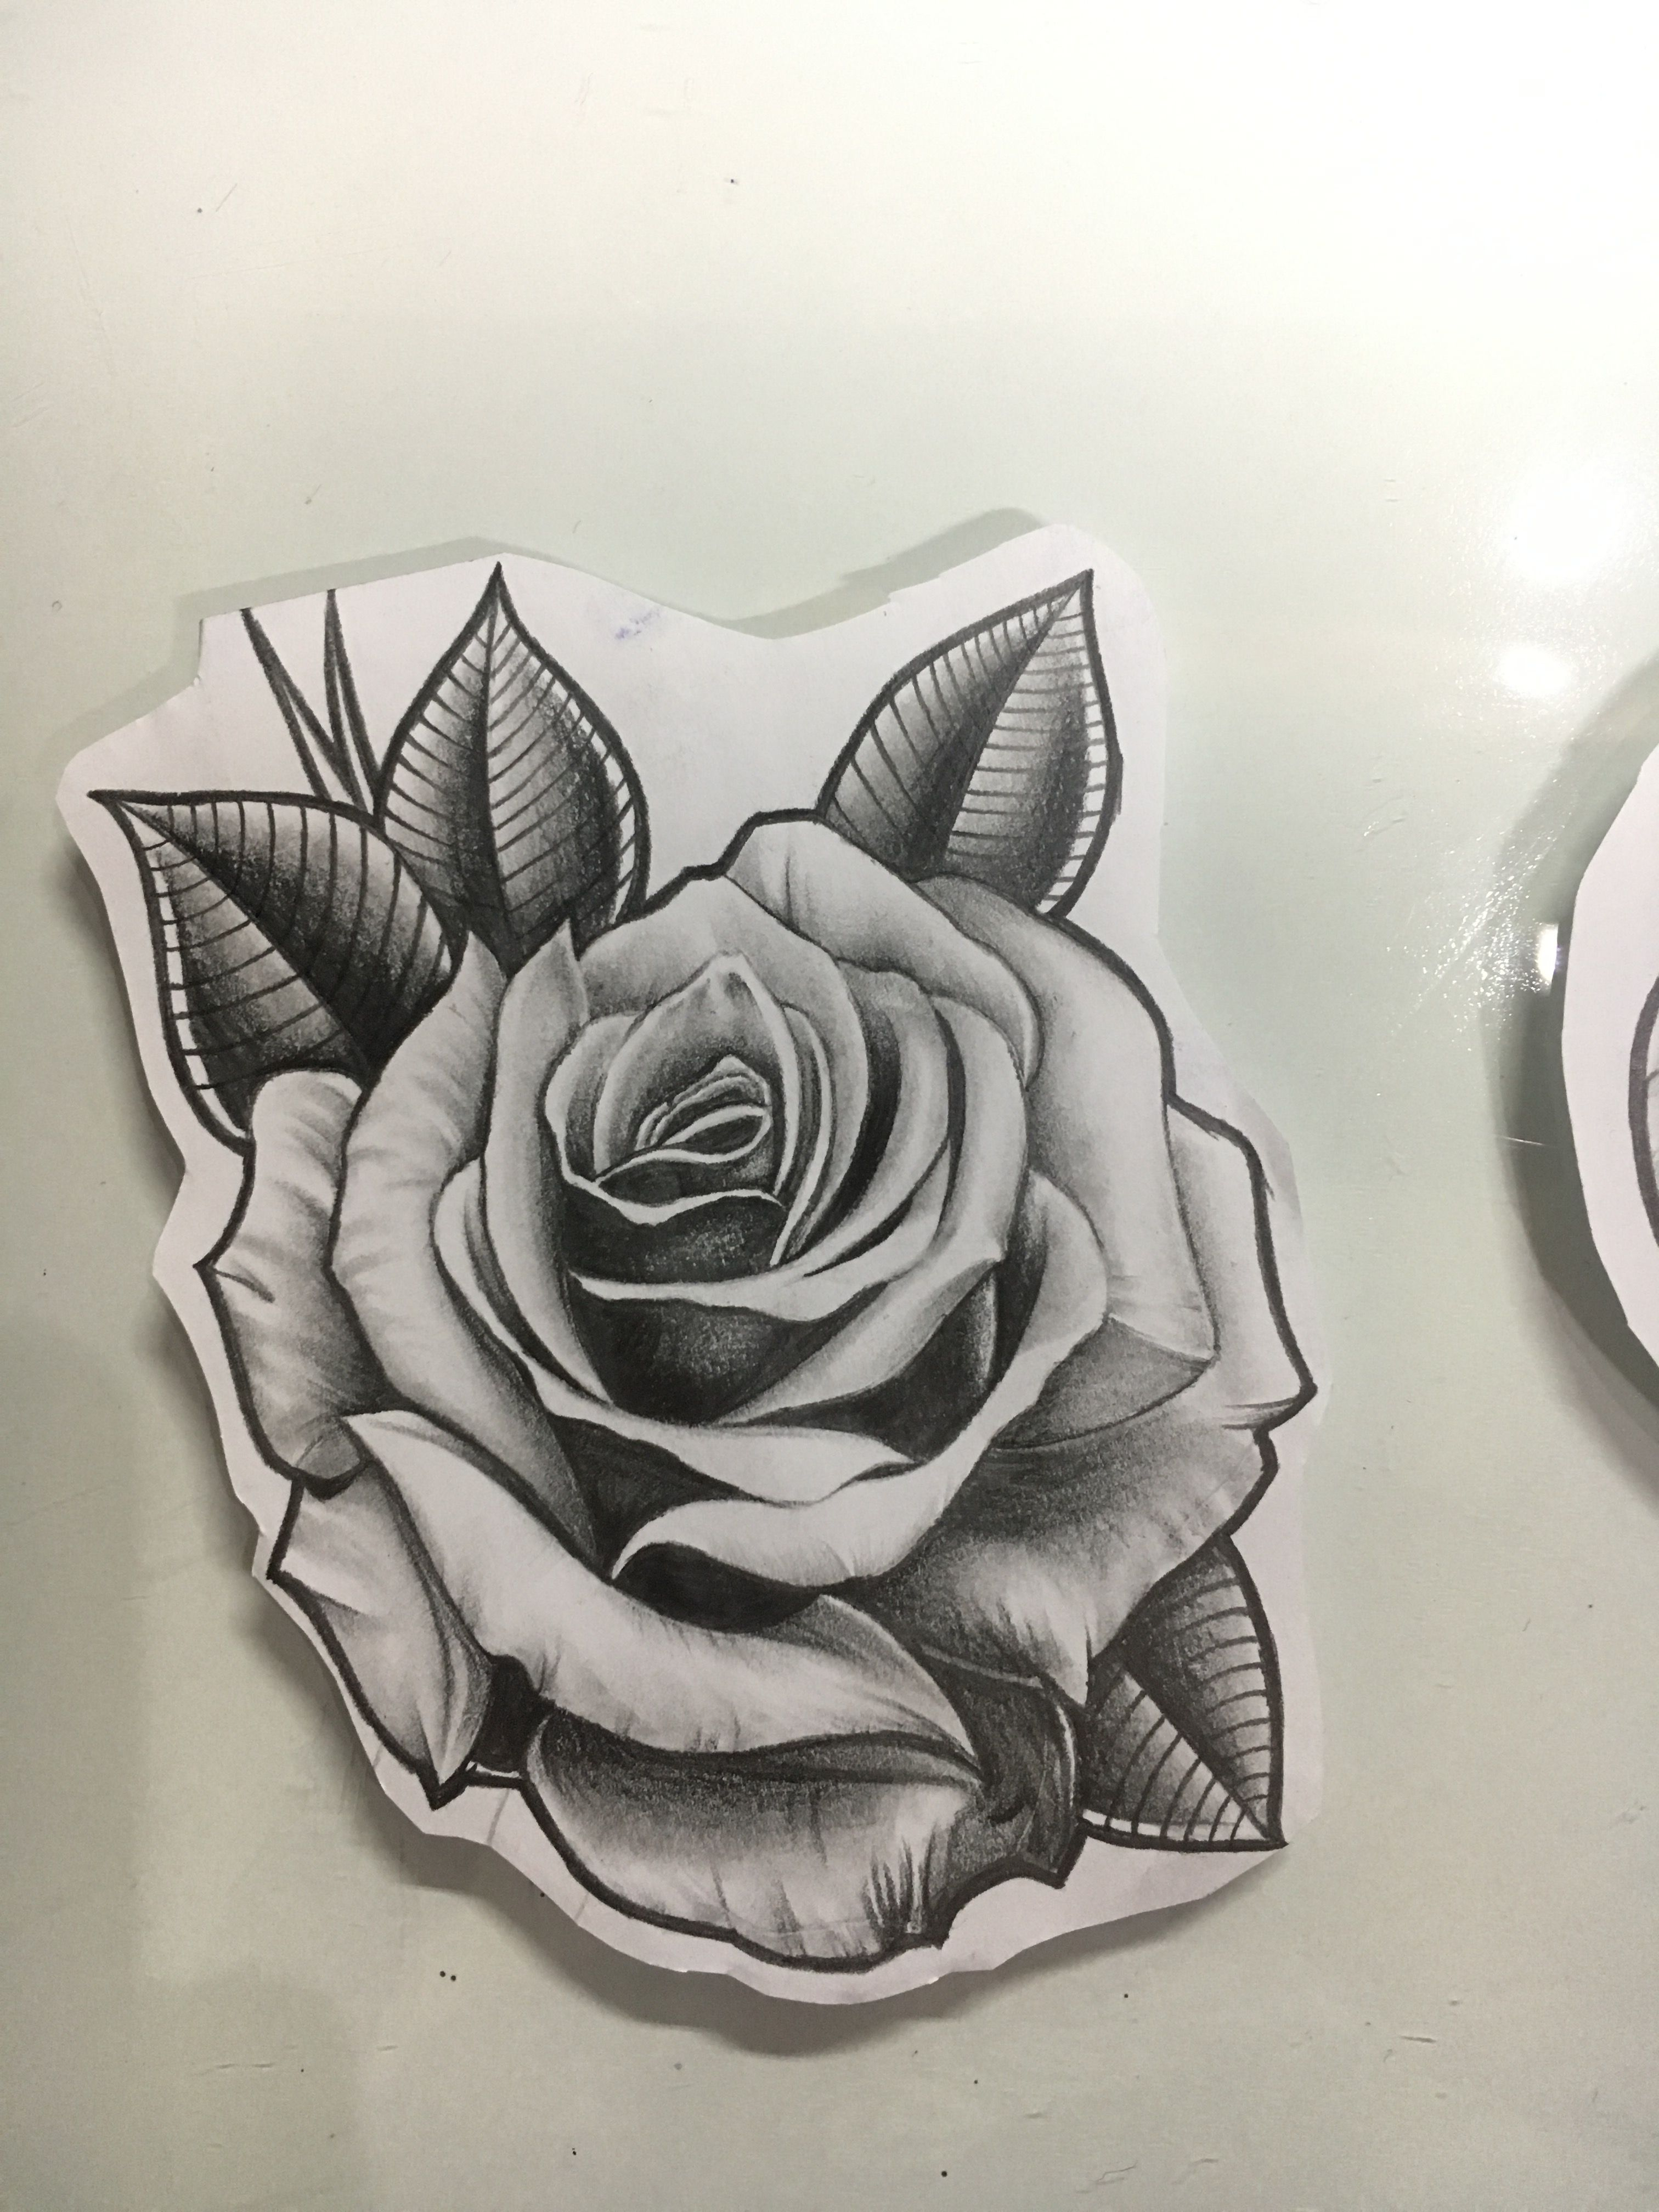 Pin By Maria Eugenia Gonzalez On Rosas Y Flores Rose Drawing Tattoo Realistic Rose Tattoo Rose Tattoo Design